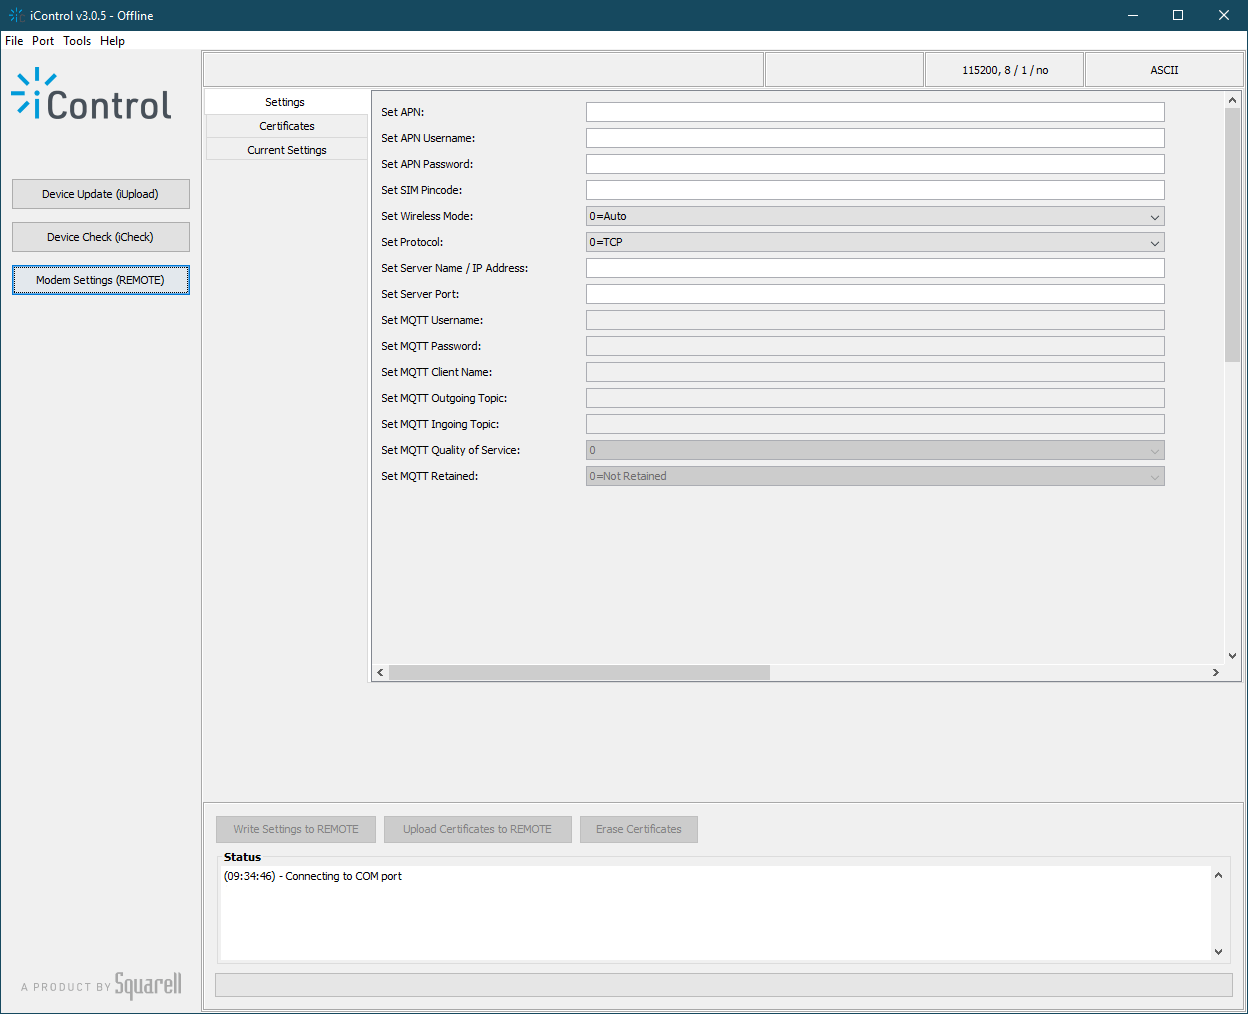 iControl: software suite for Squarell hardware